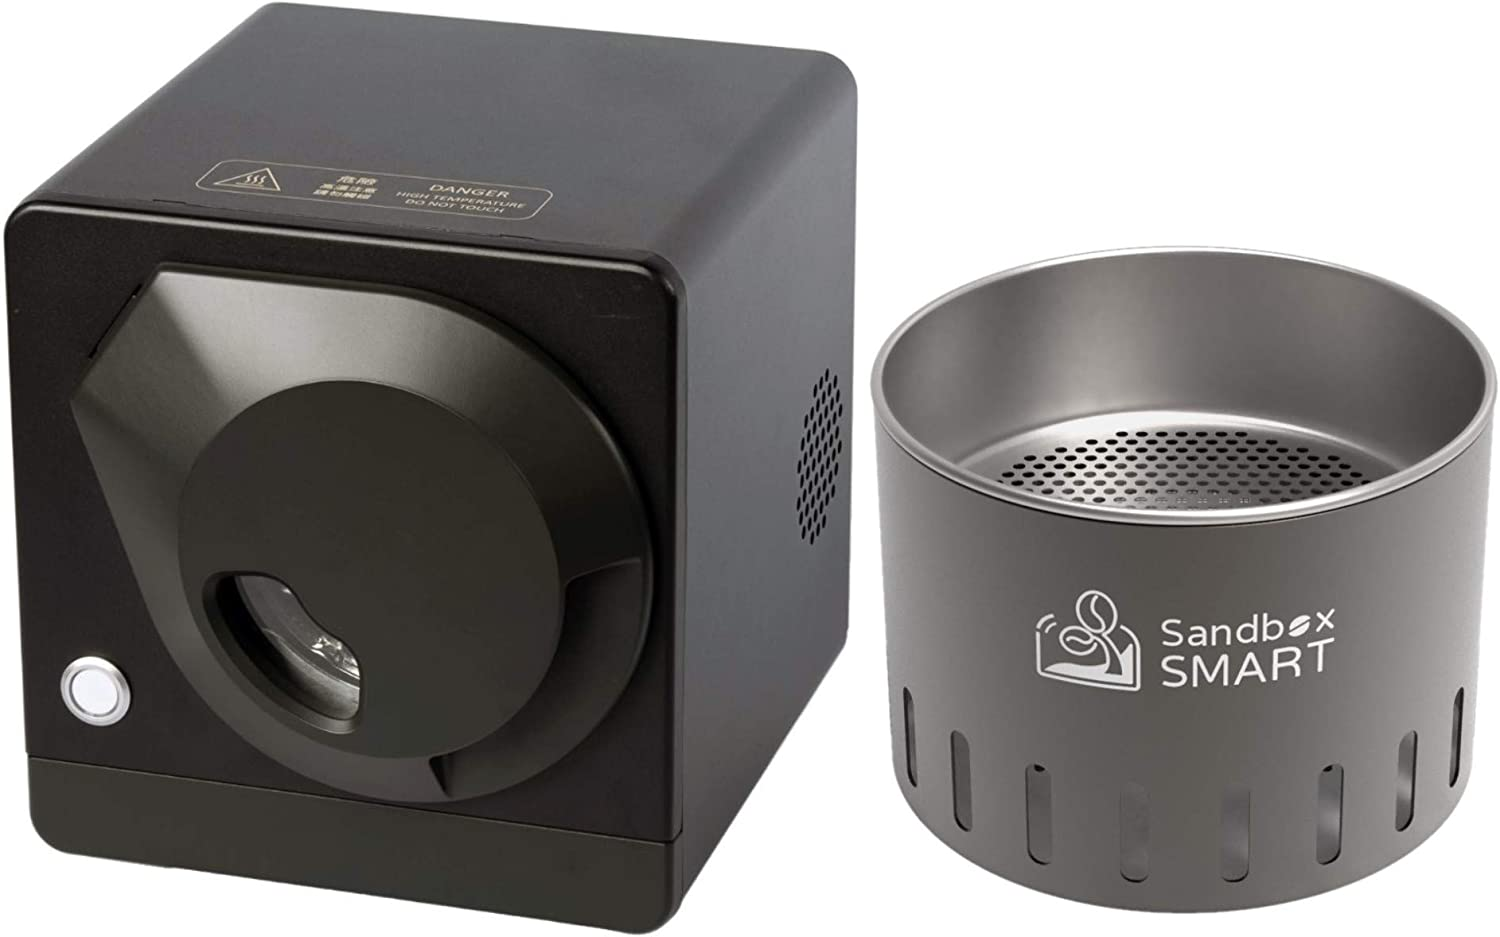 Sandbox Smart R1+C1,Coffee Bean Roaster and Cooling Tray, Coffee Bean Roasting Machine use APP for Home 220V (Black)